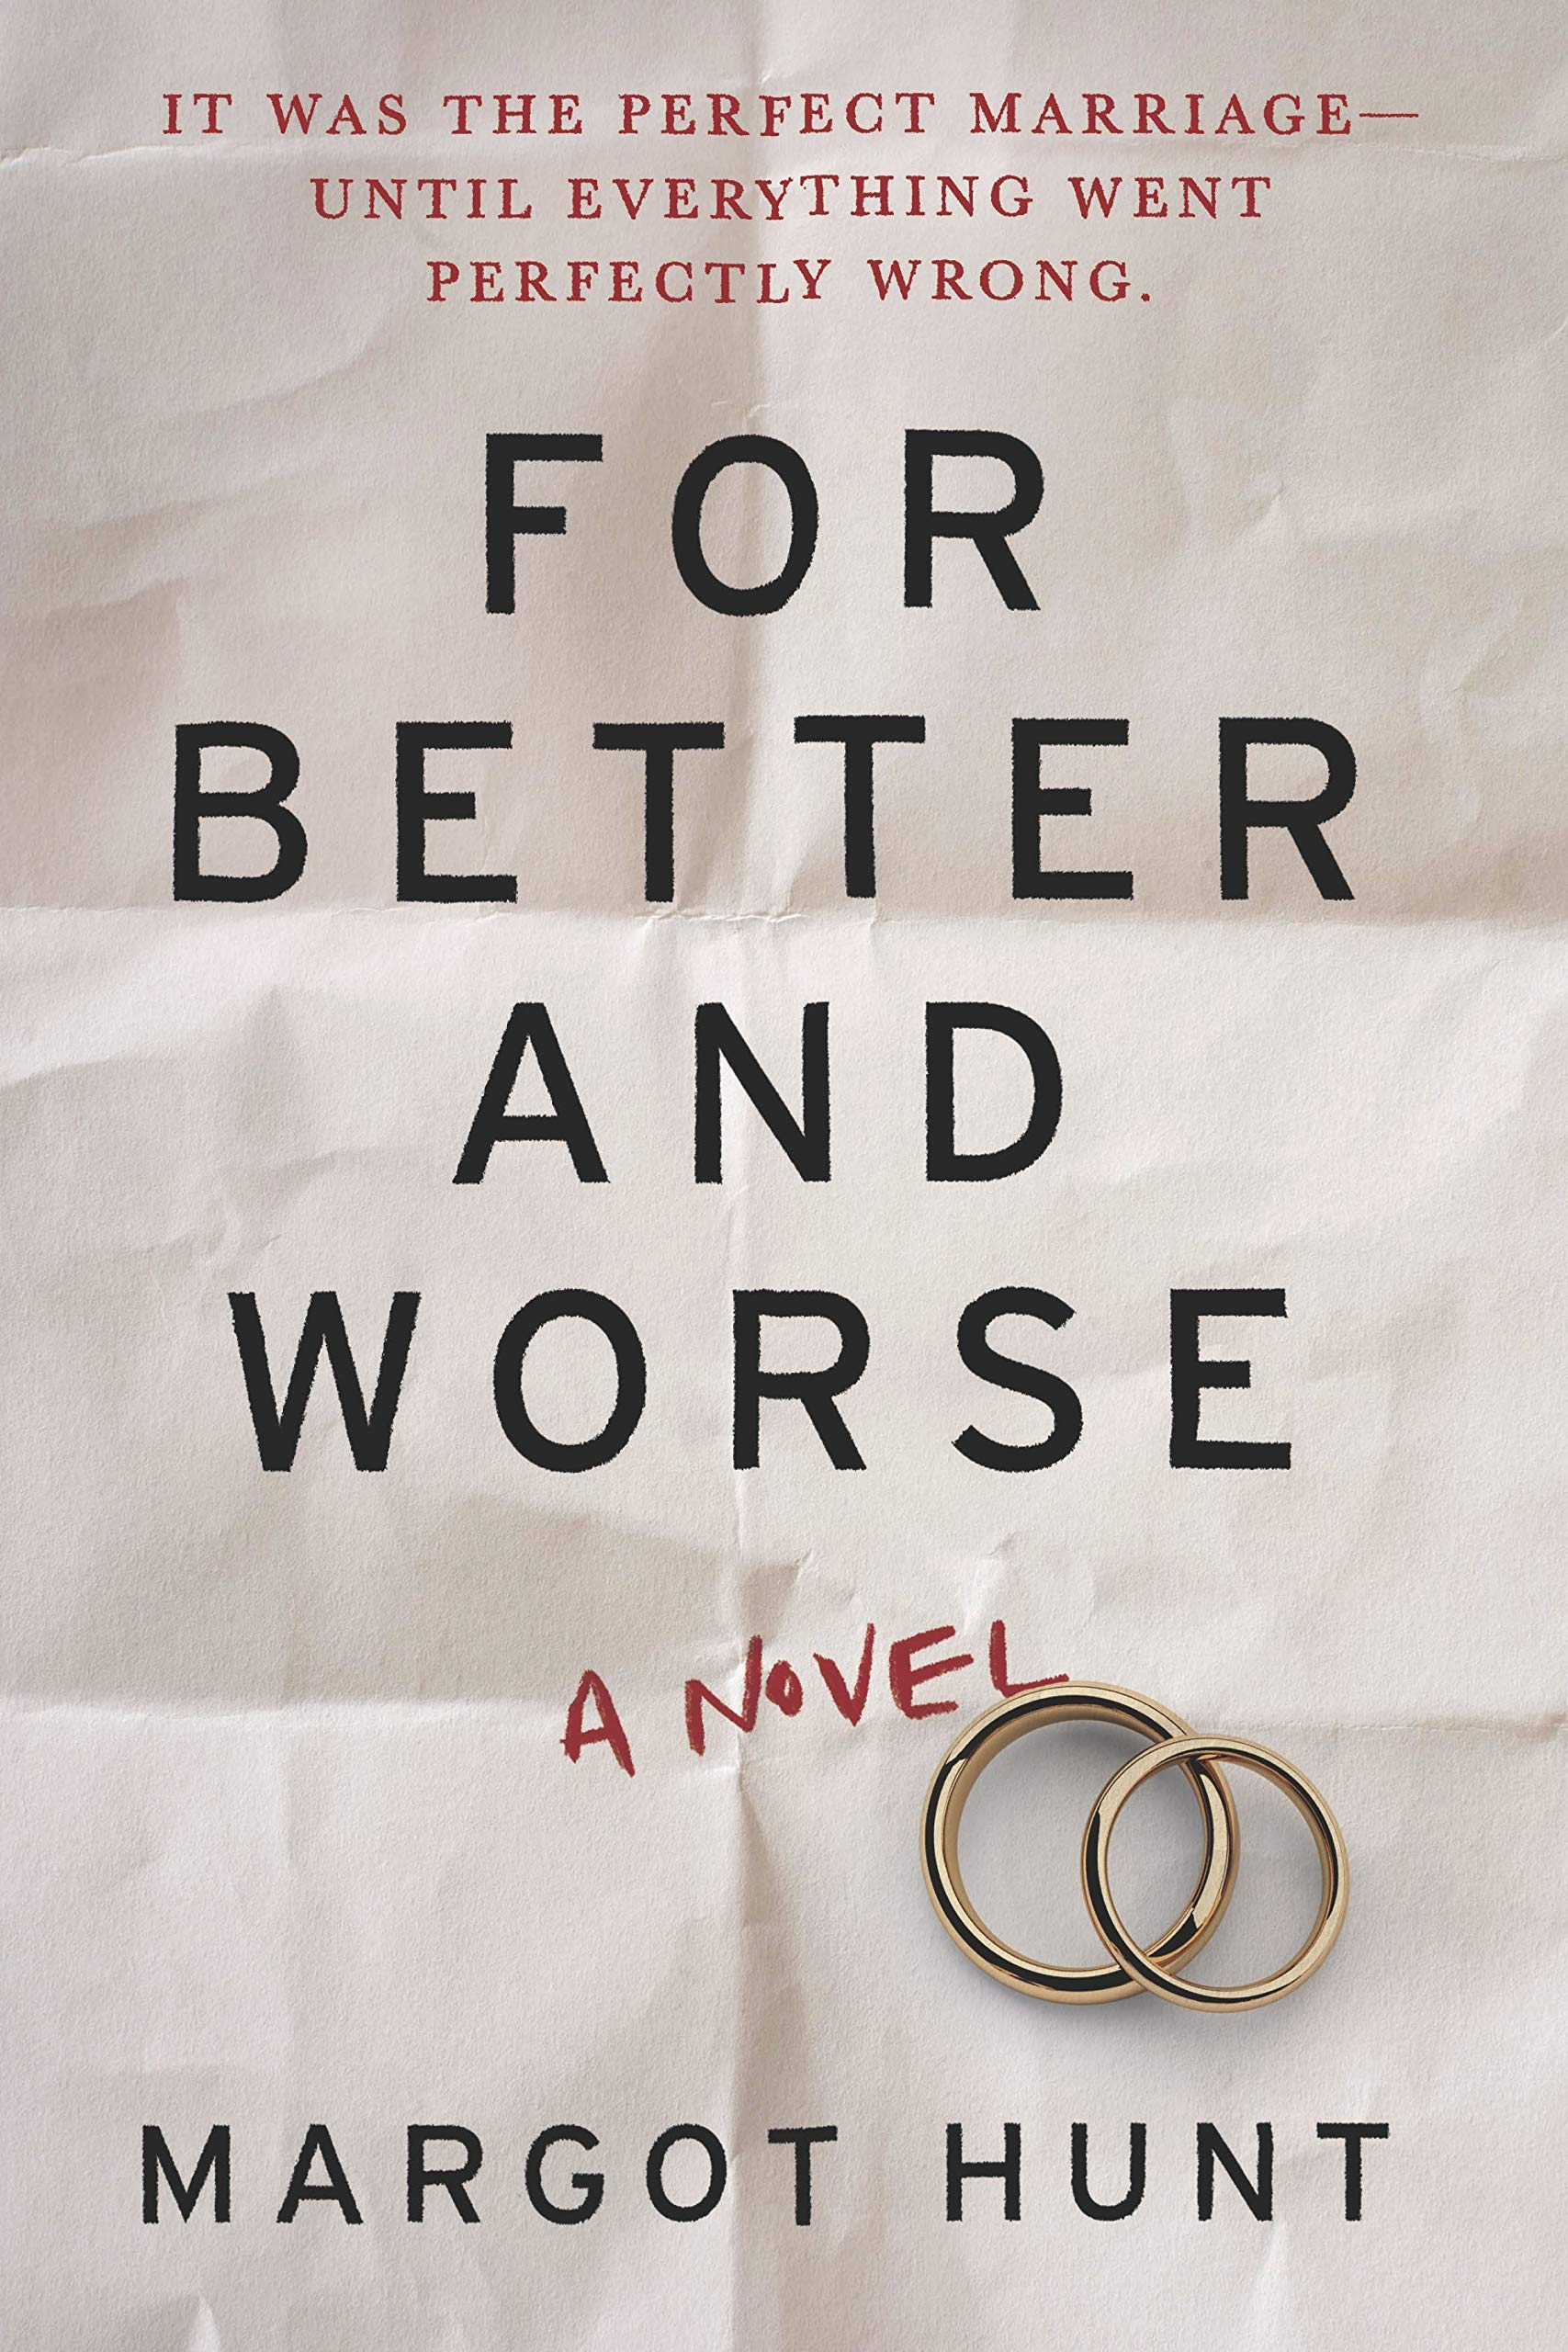 """For Better or Worse by Margot Hunt - Rating: 1/5I love thrillers, the murder-y the better. I had For Better or Worse sitting on my nightstand for months after selecting it as my Book of the Month pick earlier in the year and finally picked it up in May….I wish I hadn't. The book follows Natalie and Will Clarke, husband and wife lawyers. She is a defense attorney and he's in real estate law. Their son Charlie becomes a victim to sexual assault by the elementary school principal. Being a defense attorney whose job is literally to help accused criminals, Natalie decides she can pull off the perfect murder. Will finds his way into helping involuntarily and now the police are snooping around to find out """"whodunit"""". The problems I faced with this book were 1. Sexual assault of a child is not the crime I want to read about at all (thankfully it was not detailed), 2. The murder itself was very uncreative and boring (I really hope this doesn't make me sound weird lol), and finally 3. The ending was dumb and again not creative at all. When I closed the book, I got the impression I had just read a book by someone who always dreamed of writing a thriller, but doesn't actually know how to write. Sorry Margot, better luck next time!Is it a must read? Hard no."""